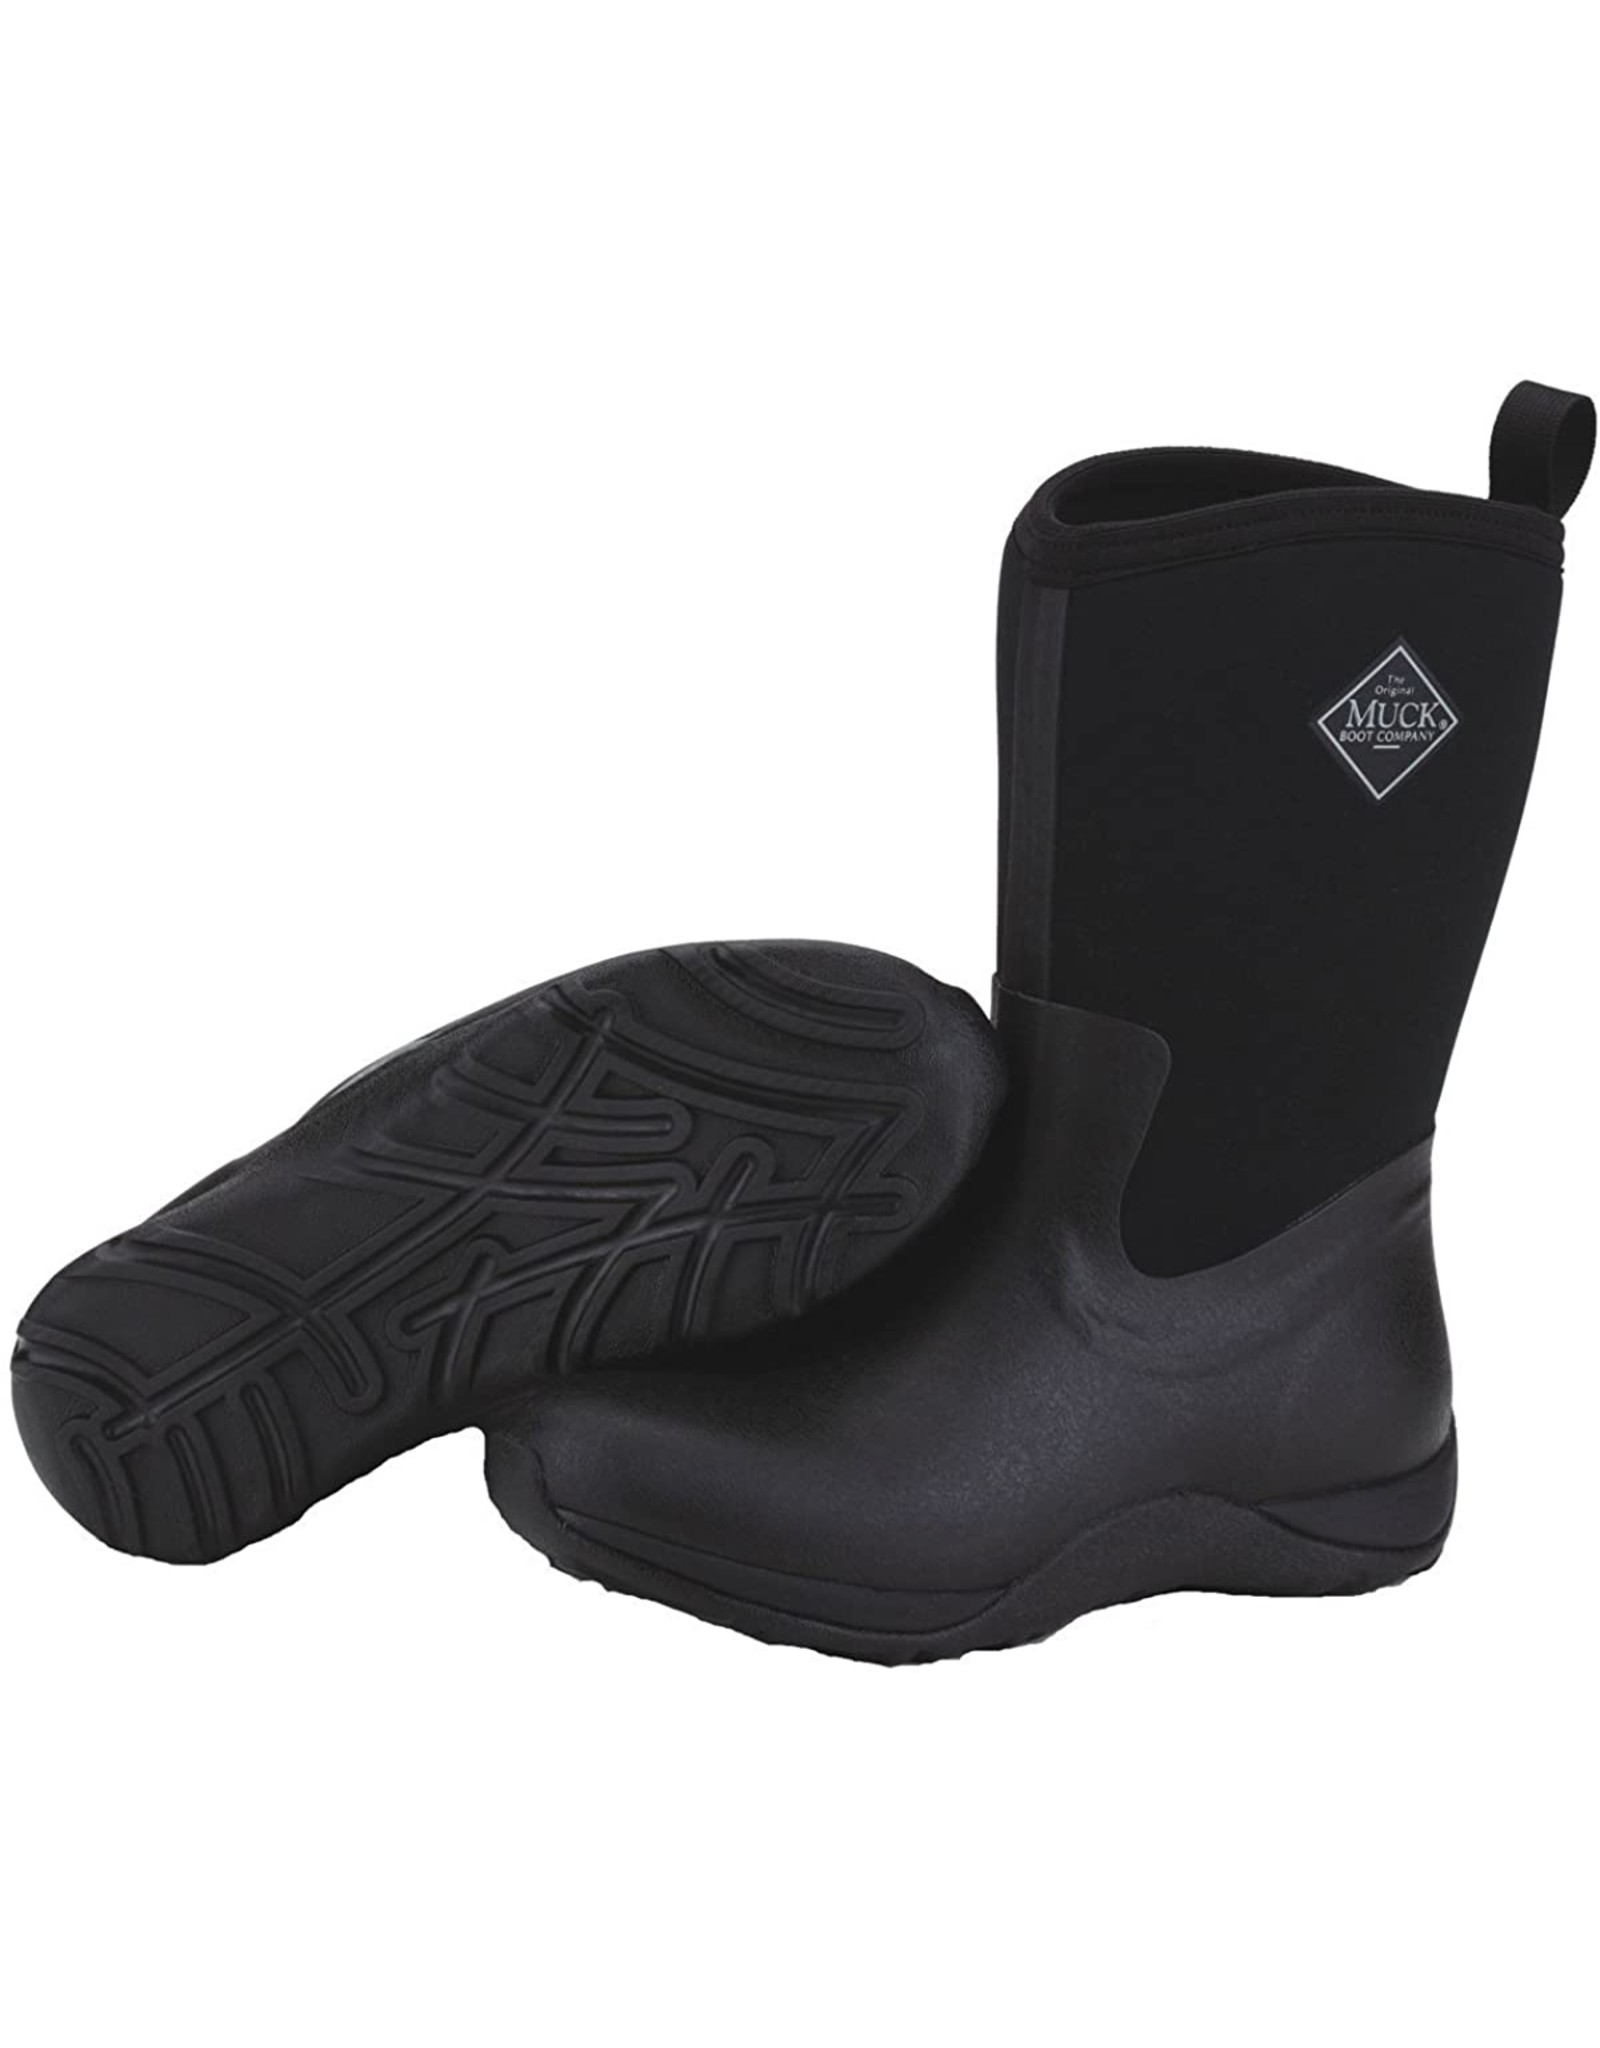 MUCK BOOT COMPANY LADIES ARCTIC WEEKEND BOOT